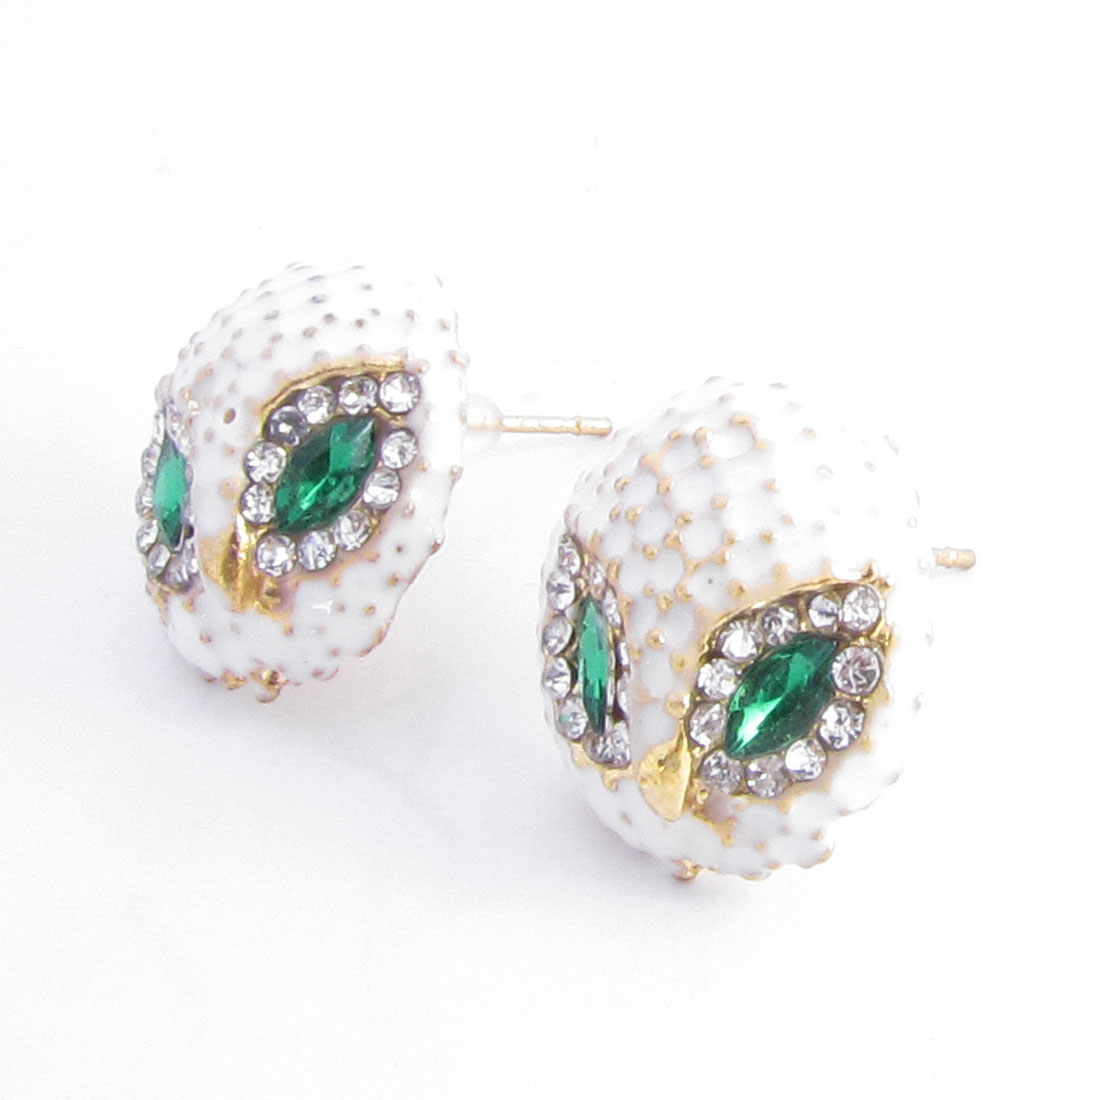 Lady Ear Decor White Green Owl Shaped Rhinestones Detailing Stud Earrings Pair